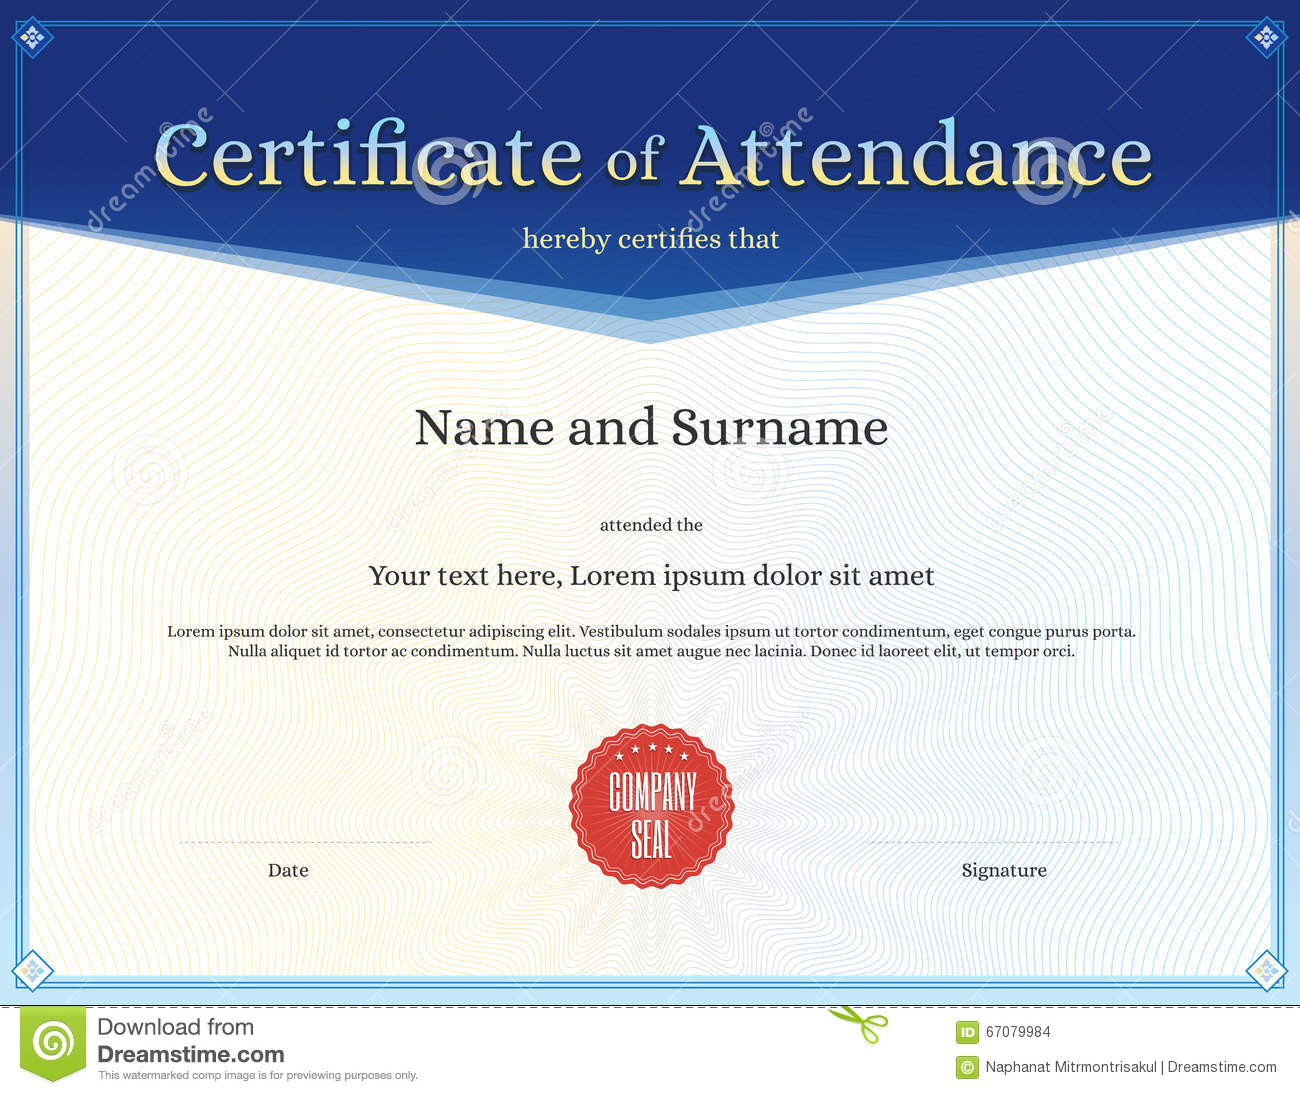 Certificate Of Attendance Template In Vector  Attendance Certificates Free Templates